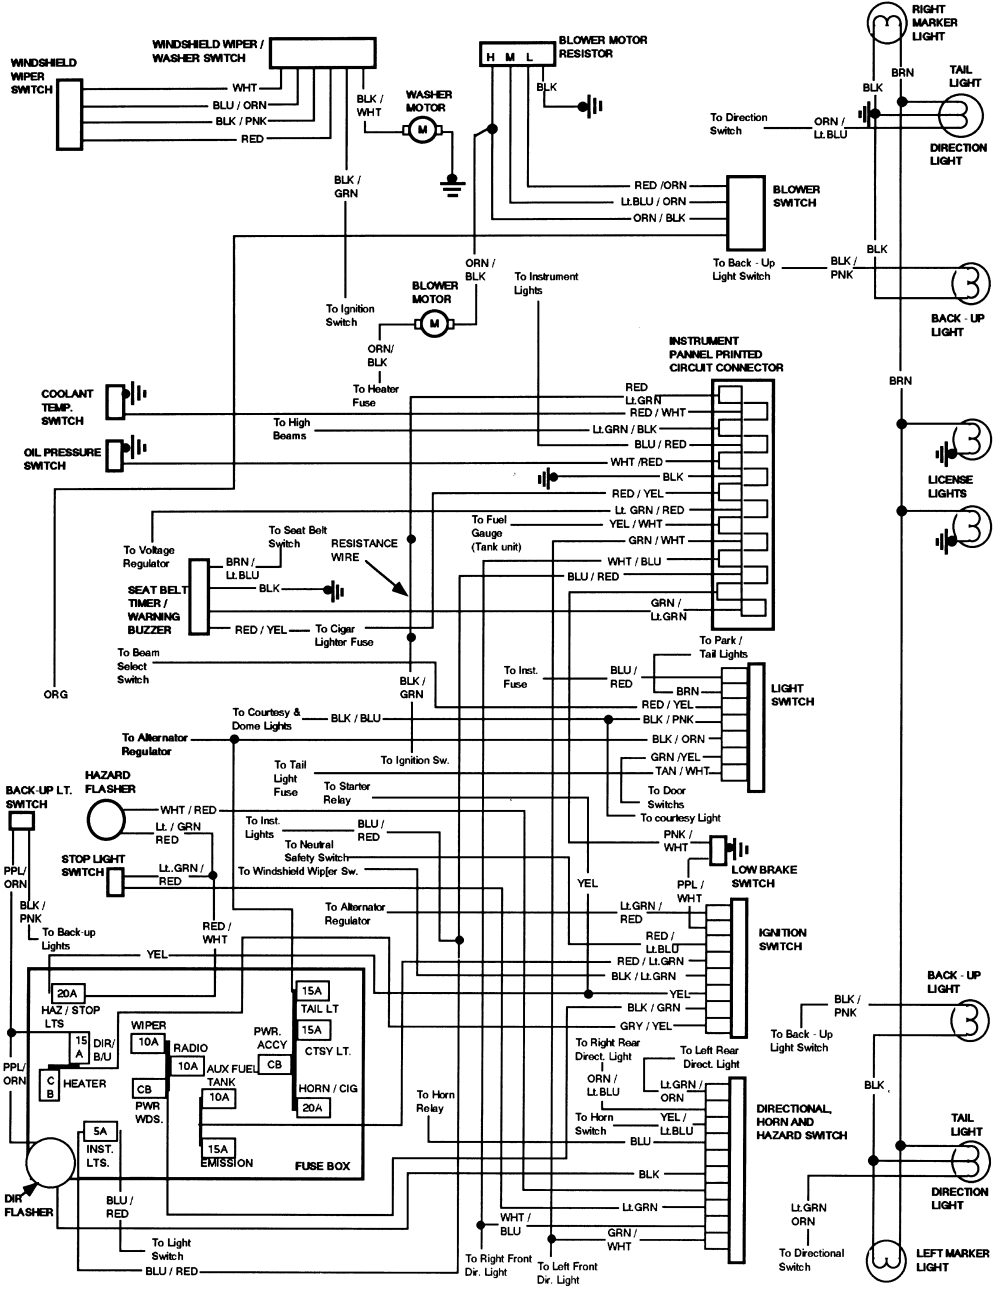 [DIAGRAM] Wiring Diagram For 1991 Ford F250 FULL Version